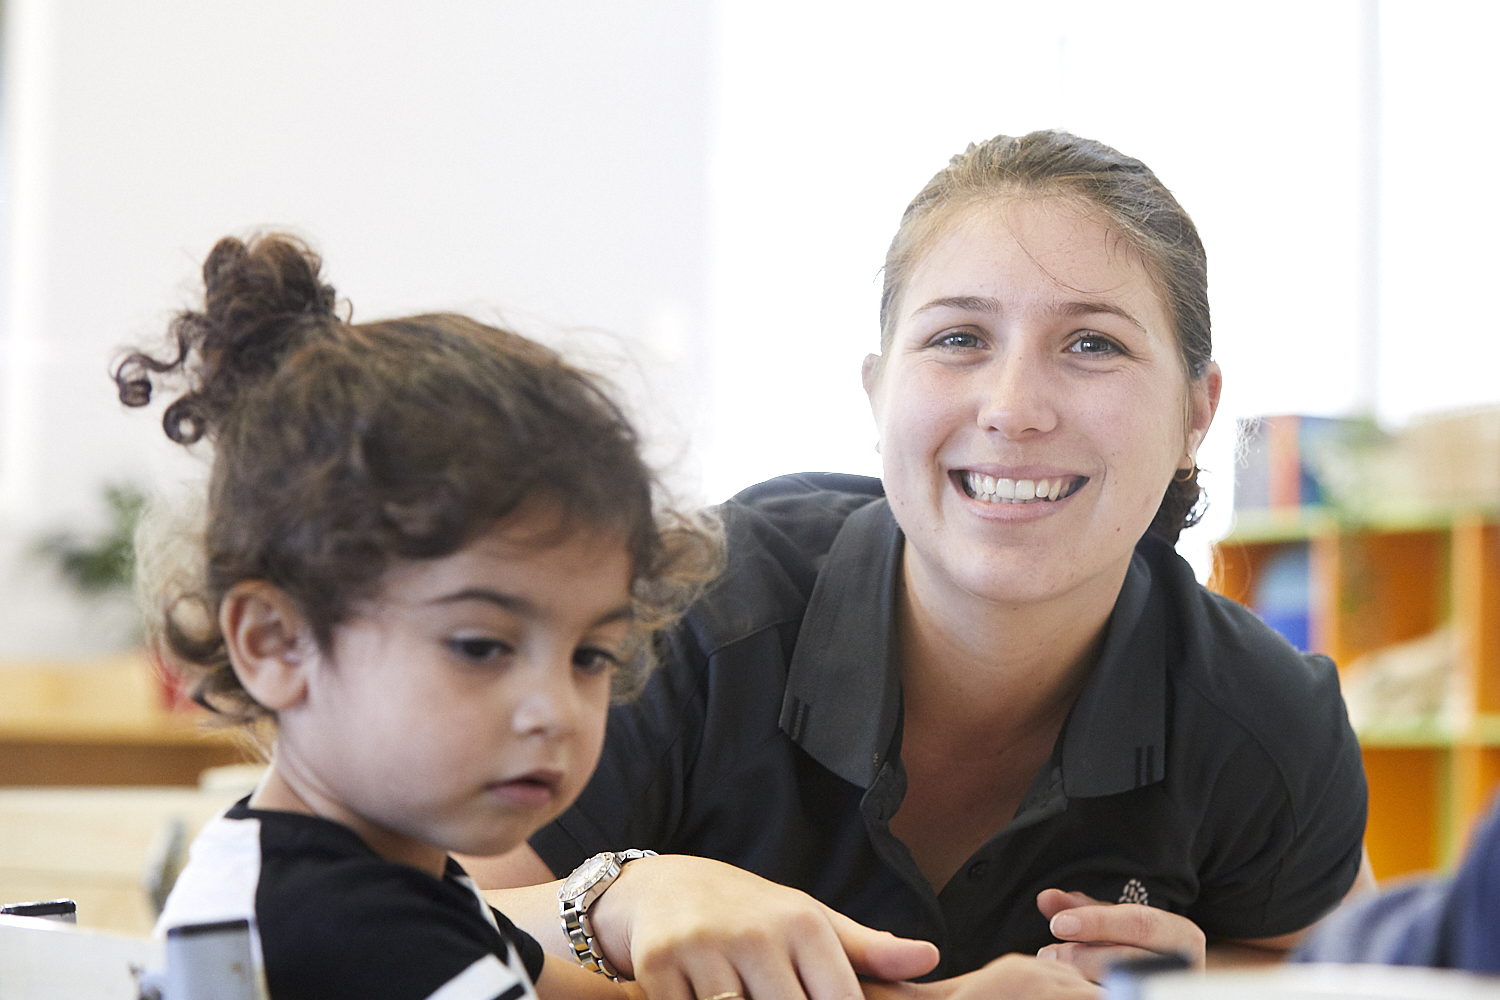 Child care educator with young child in child care classroom at Papilio Dundas Valley